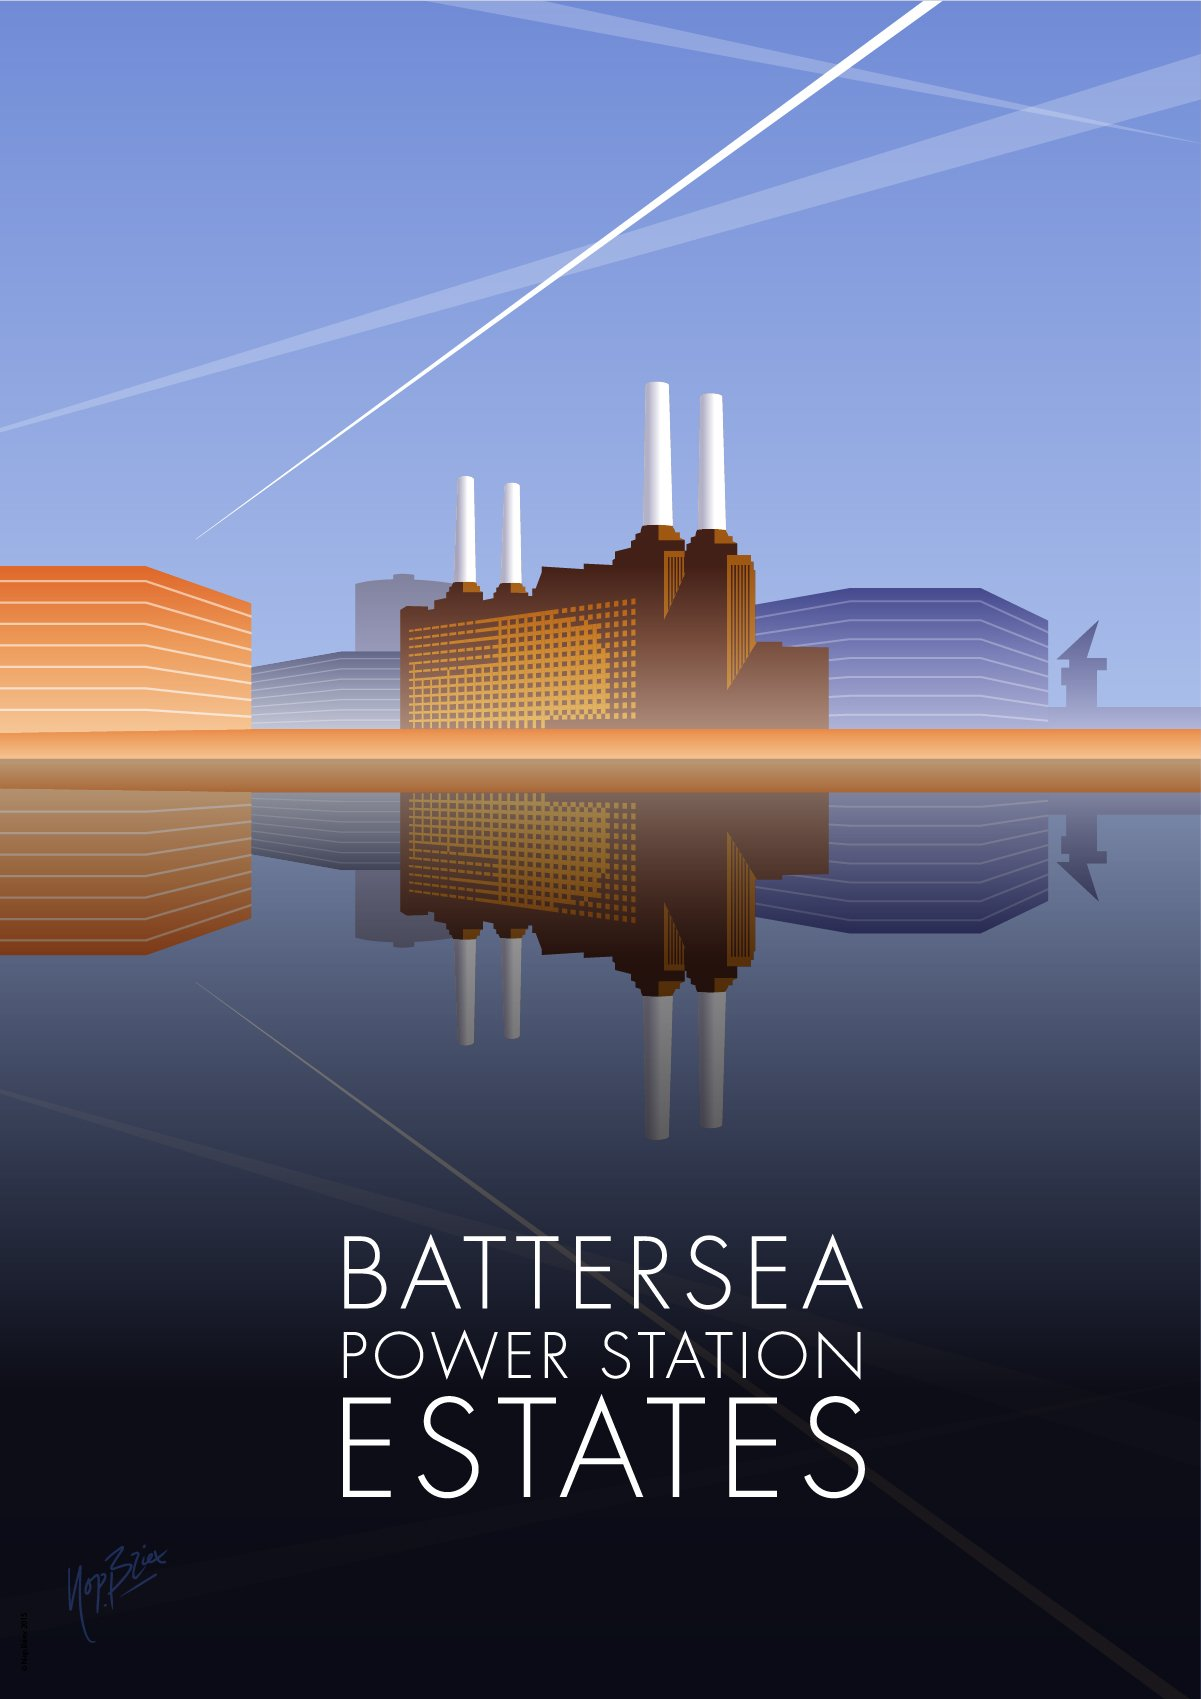 Battersea Power Station Estates by Nop Briex 2015-01